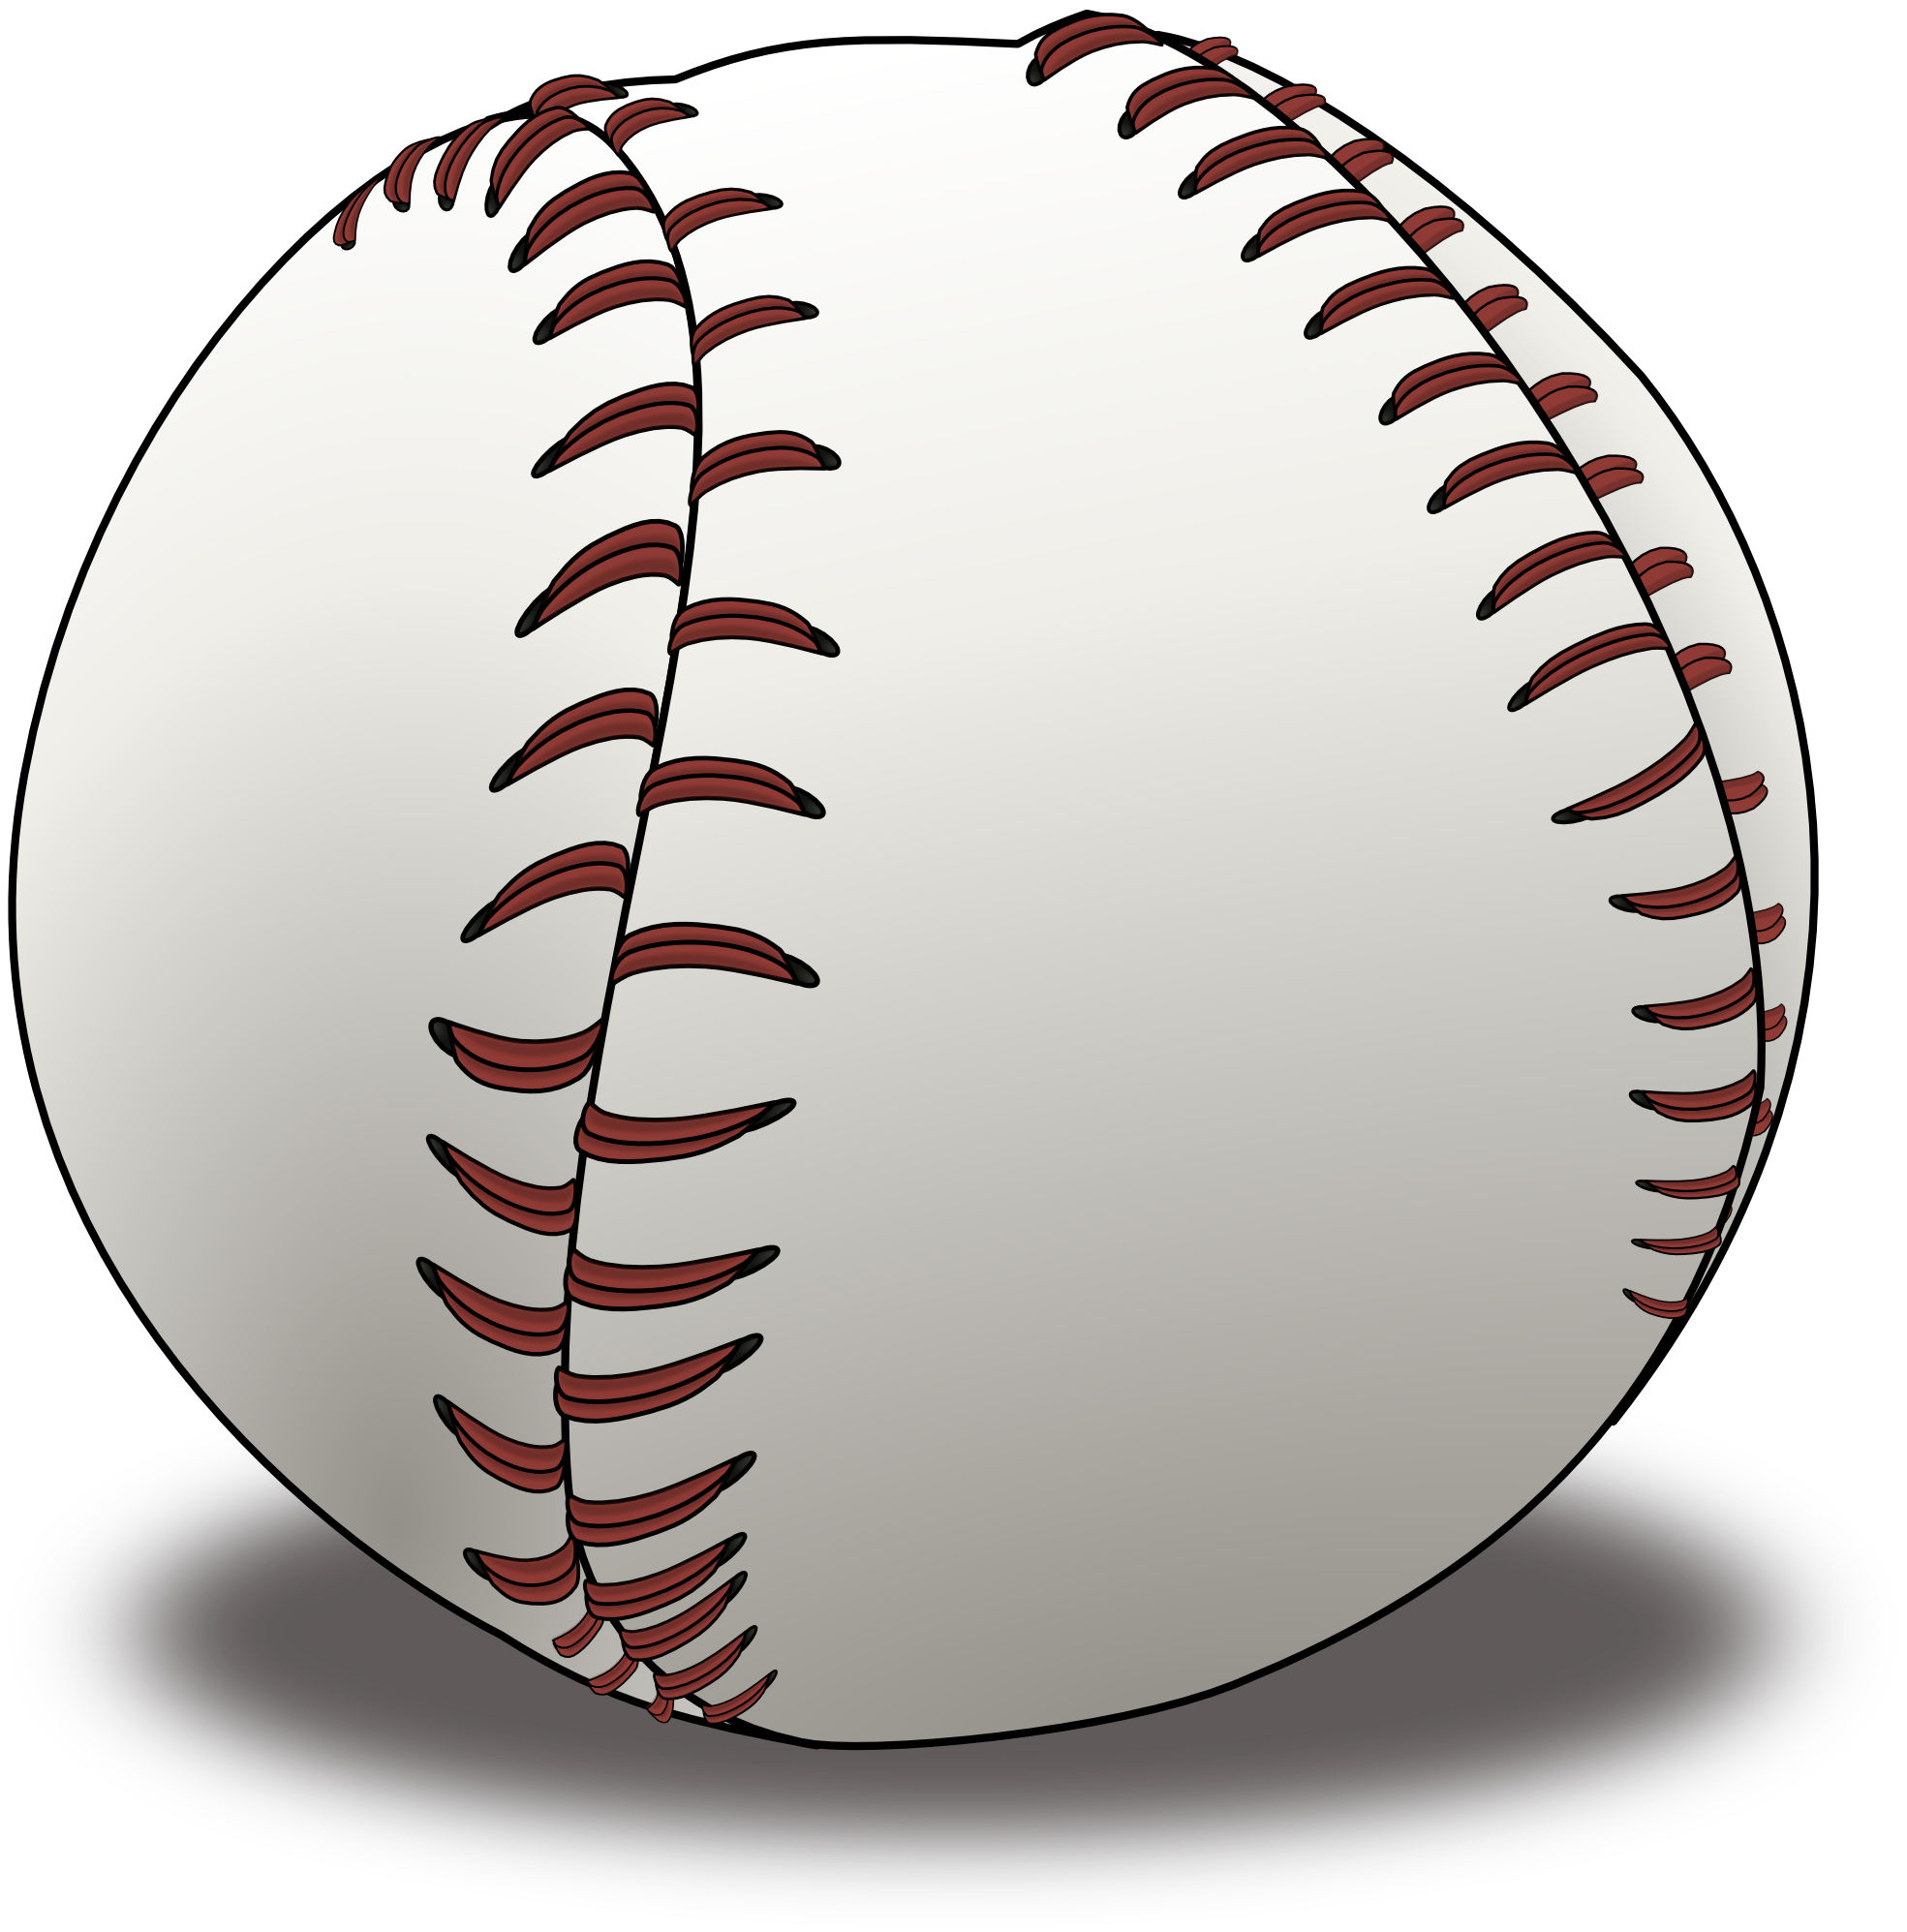 Baseball on fire clipart clip art transparent download Baseball png clipart #35349 - Free Icons and PNG Backgrounds clip art transparent download